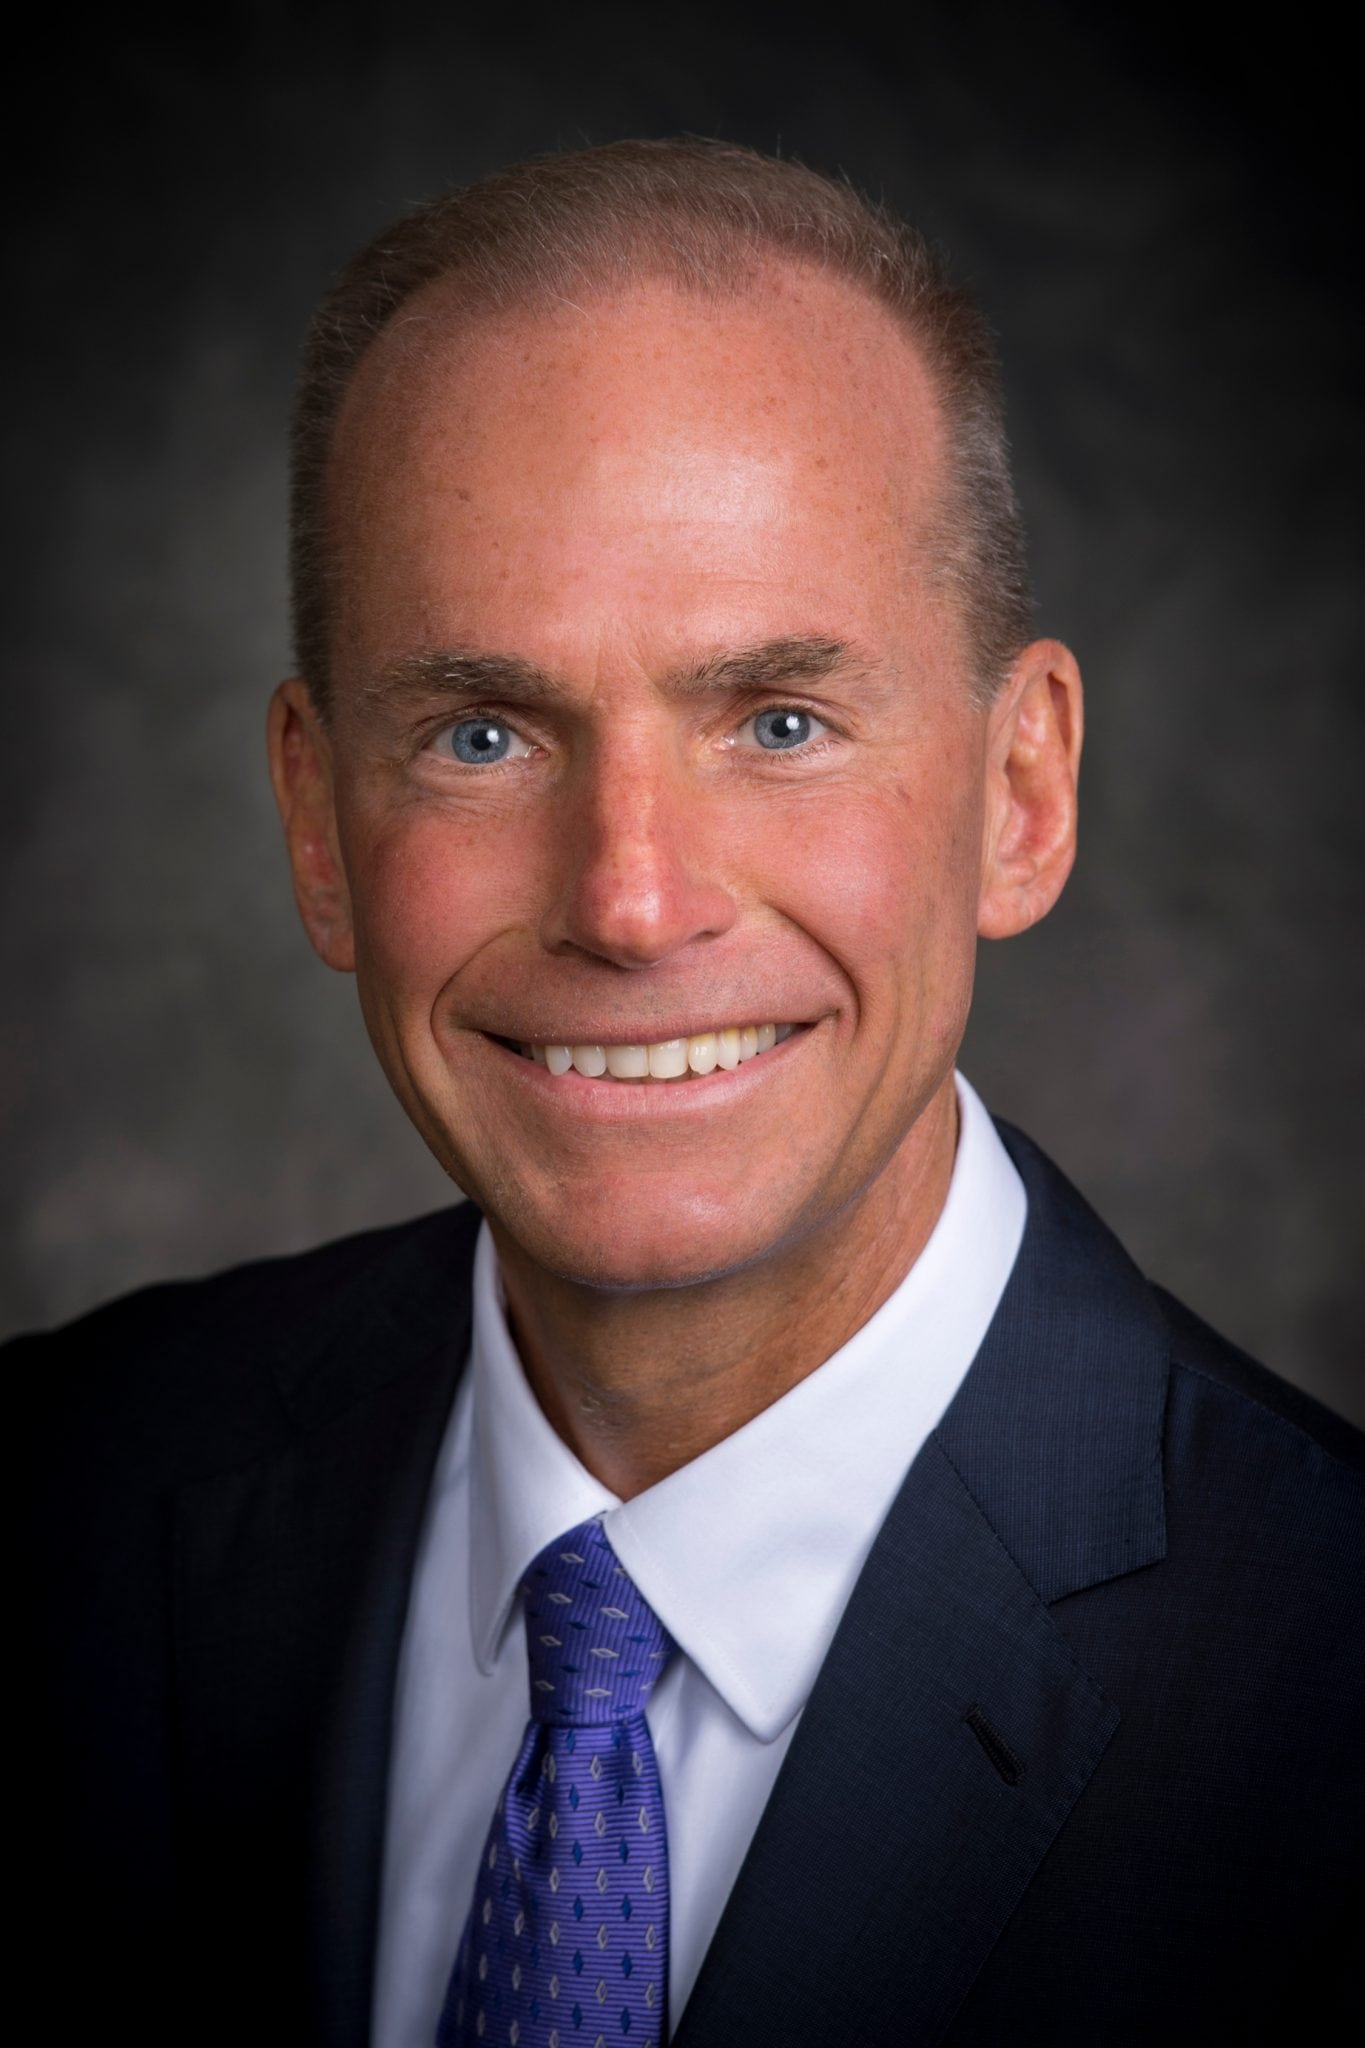 Dennis A. Muilenburg, Boeing president and chief executive officer effective July 1